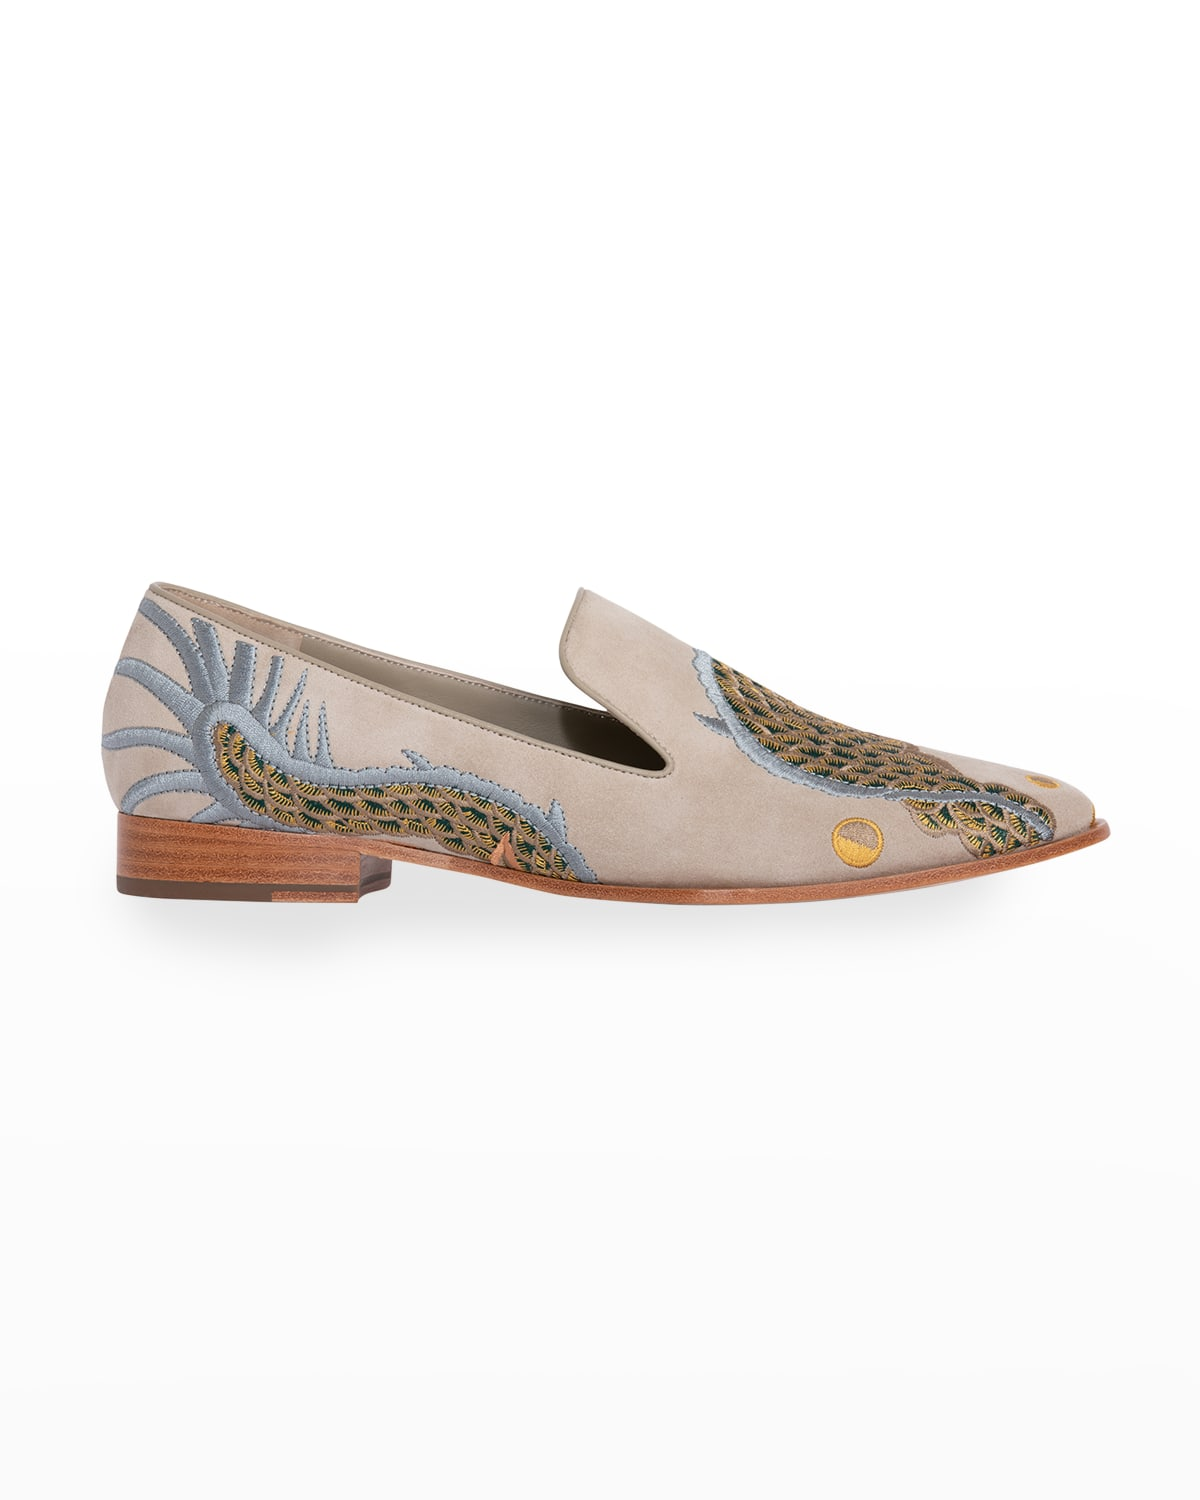 Dragon-Embroidered Suede Smoking Loafers